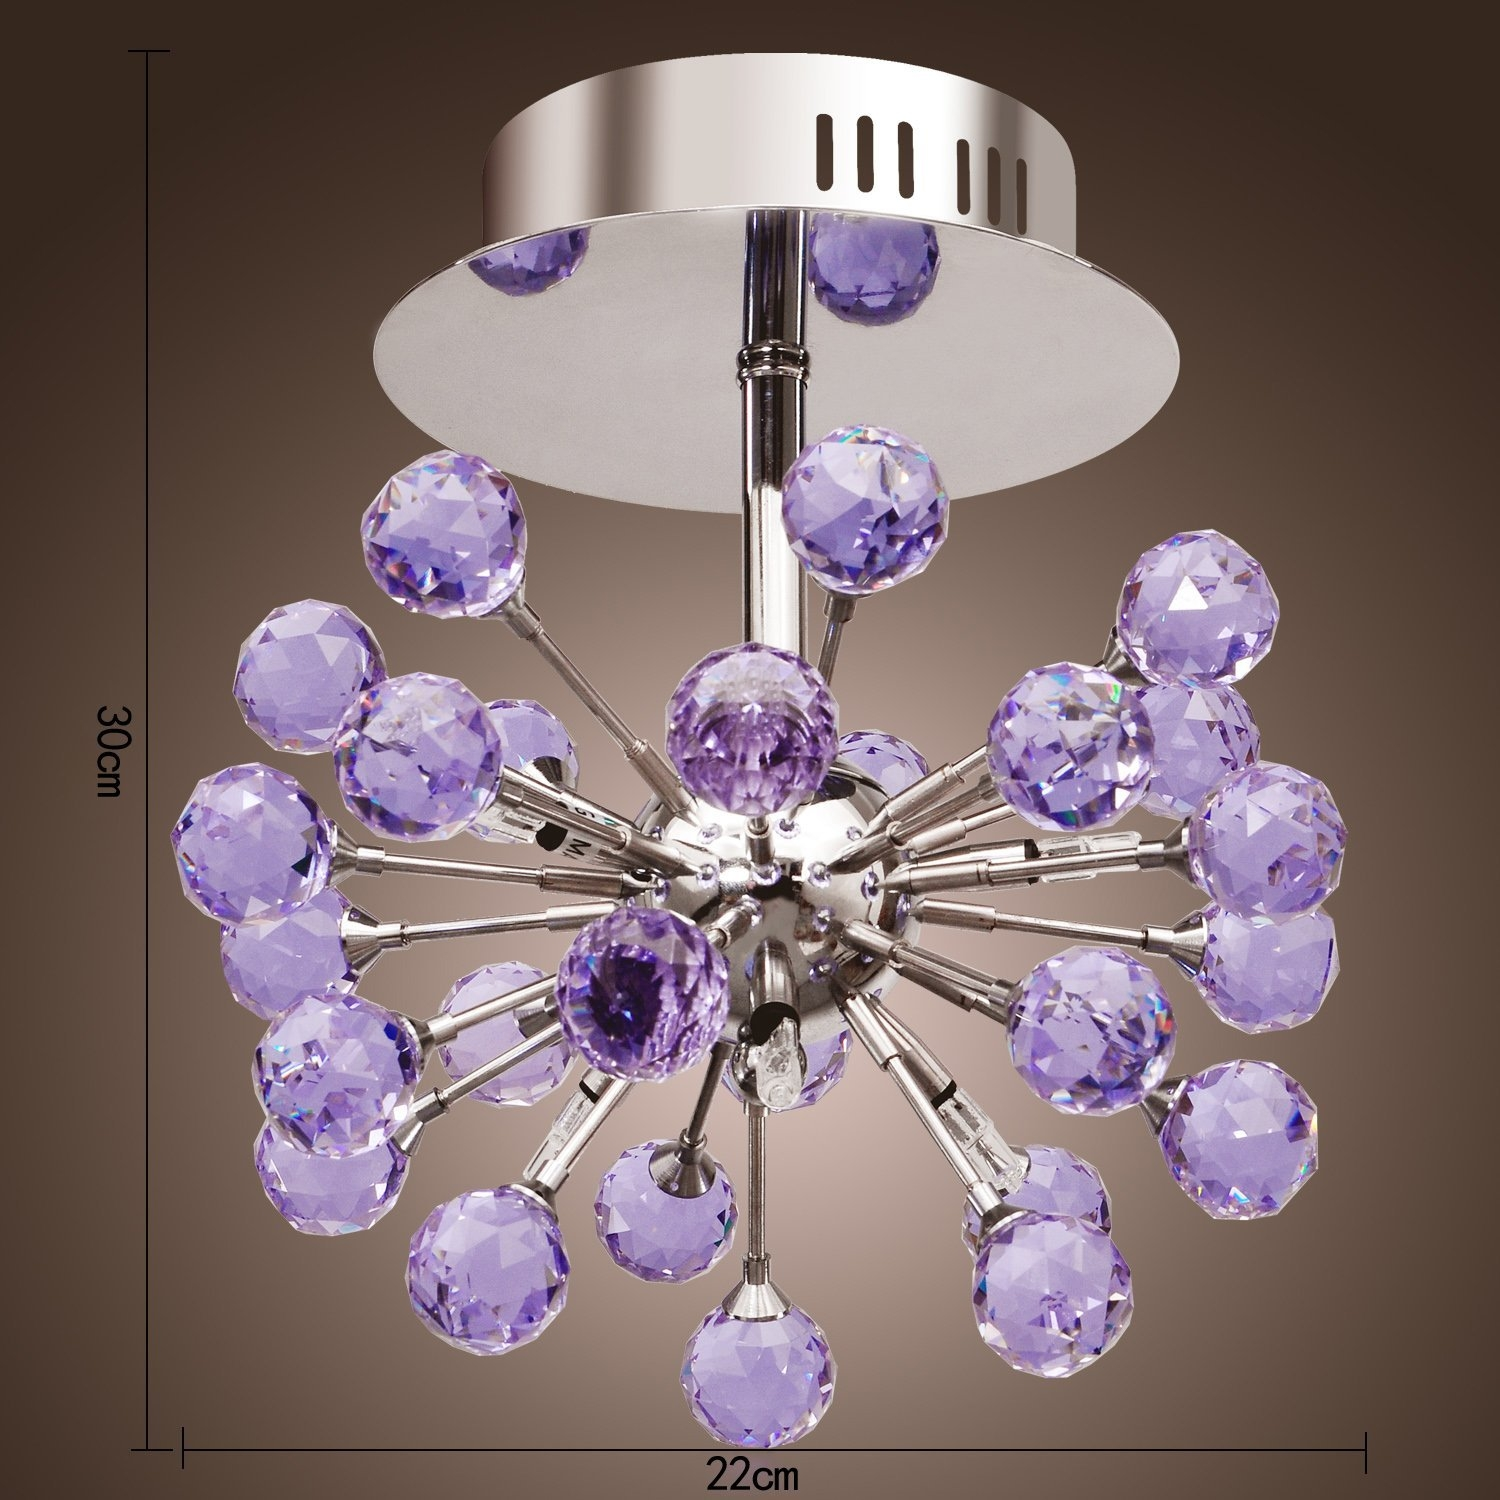 Lightinthebox 6 Light Floral Shape K9 Crystal Ceiling Light Purple With Regard To Purple Crystal Chandelier Lights (Image 16 of 25)